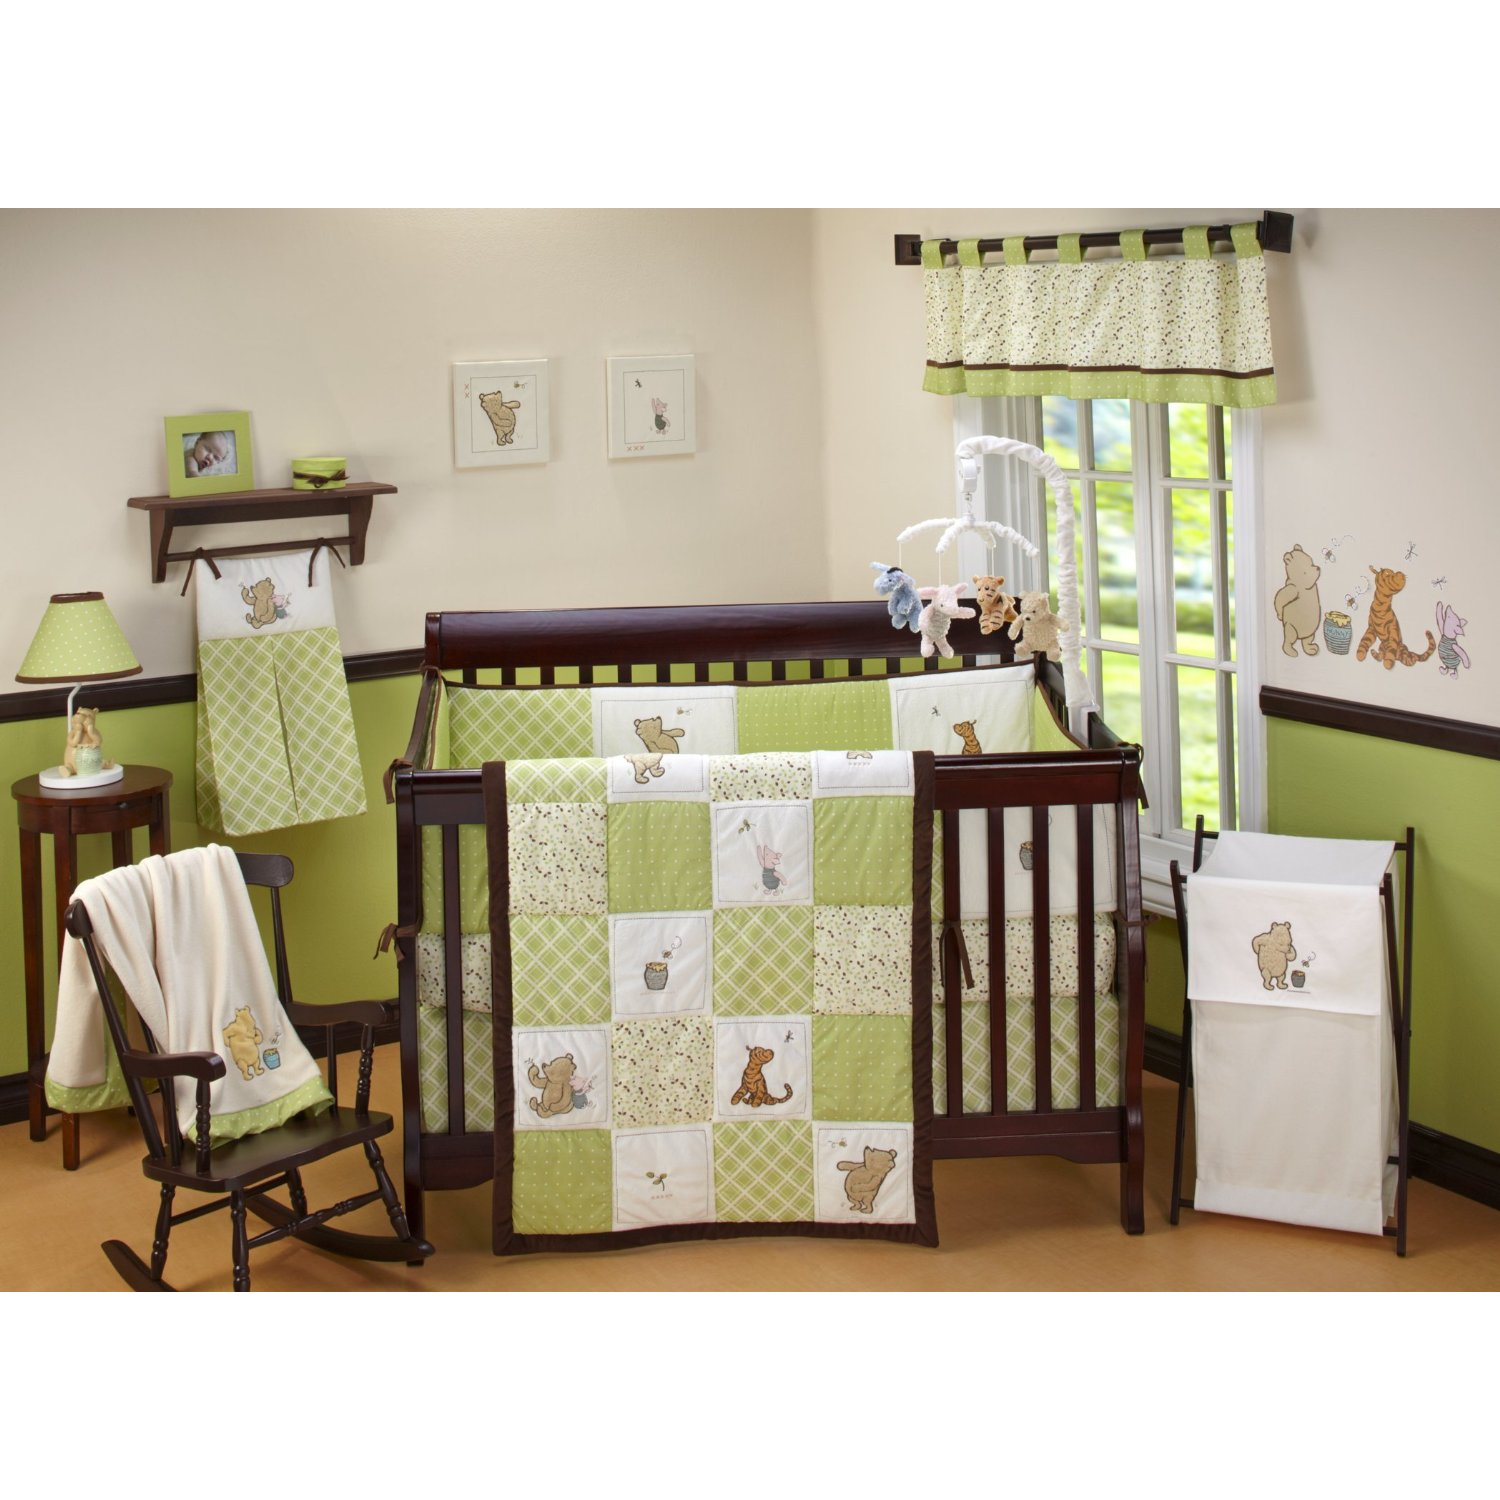 Nursery room ideas winnie the pooh crib bedding set for Babies decoration